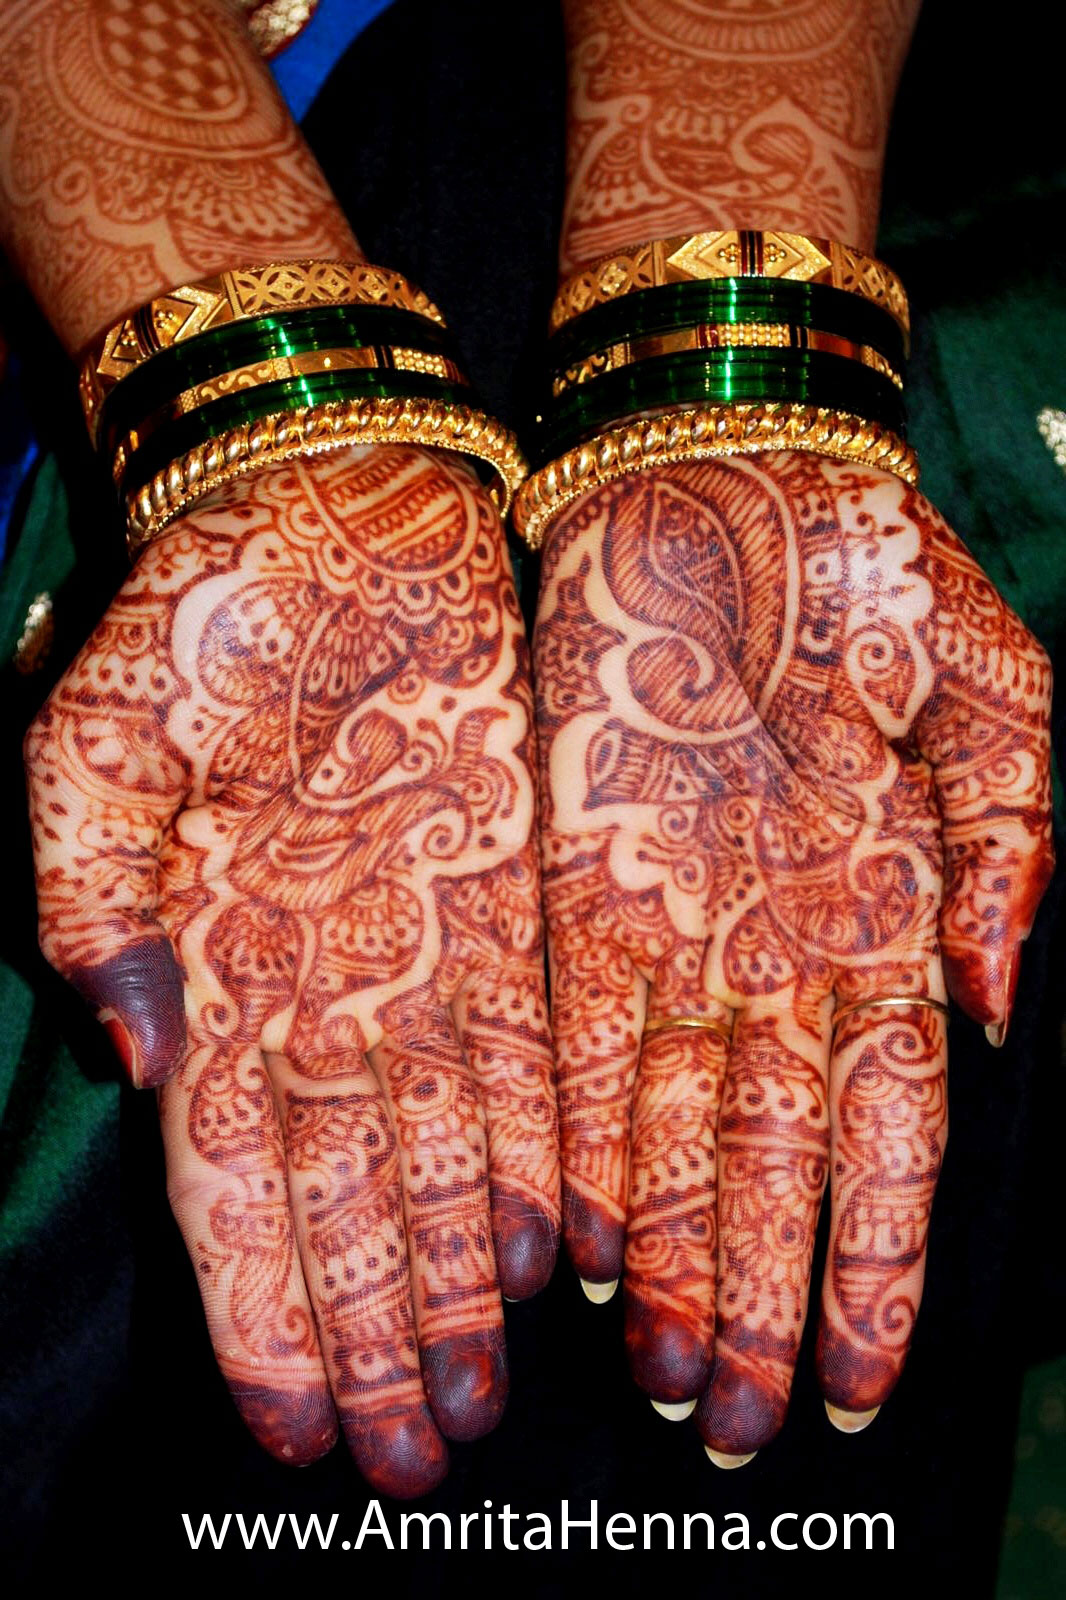 TOP 10 RAJASTHANI BRIDAL MEHNDI DESIGNS FOR FULL HANDS - 10 BEST MARWARI MEHENDI DESIGNS FOR HANDS AND FEET - 10 STUNNING INTRICATE RAJASTHANI MEHNDI DESIGNS TO INSPIRE YOU - 10 BEAUTIFUL TRADITIONAL RAJASTHANI HENNA DESIGNS - 10 MUST TRY TRADITIONAL INDIAN MARWARI STYLE MEHANDI DESIGNS - 10 NEW AND STYLISH RAJASTHANI STYLE MEHNDI DESIGNS - 10 LATEST AND UNSEEN RAJASTHANI STYLE MARWARI MEHENDI DESIGNS - TRADITIONAL INDIAN BRIDAL HENNA DESIGNS FOR HANDS AND FEET -  TOP 10 AMAZING RAJASTHANI STYLE DULHAN MEHNDI HENNA DESIGNS FOR INDIAN WEDDINGS - 10 AWESOME RAJASTHANI MARWARI HENNA DESIGN IDEAS FOR THE INDIAN BRIDE - 10 MUST TRY RAJASTHANI MEHNDI HENNA DESIGNS THAT WILL AMAZE YOU - 10 BEST RAJASTHANI TRADITIONAL BRIDAL HENNA DESIGNS WITH PHOTOS - TRADITIONAL MEHNDI DESIGNS - INDIAN WEDDING BRIDAL HENNA PHOTOS - INDIAN WEDDING HENNA SANGEET CEREMONY DESIGN IDEAS